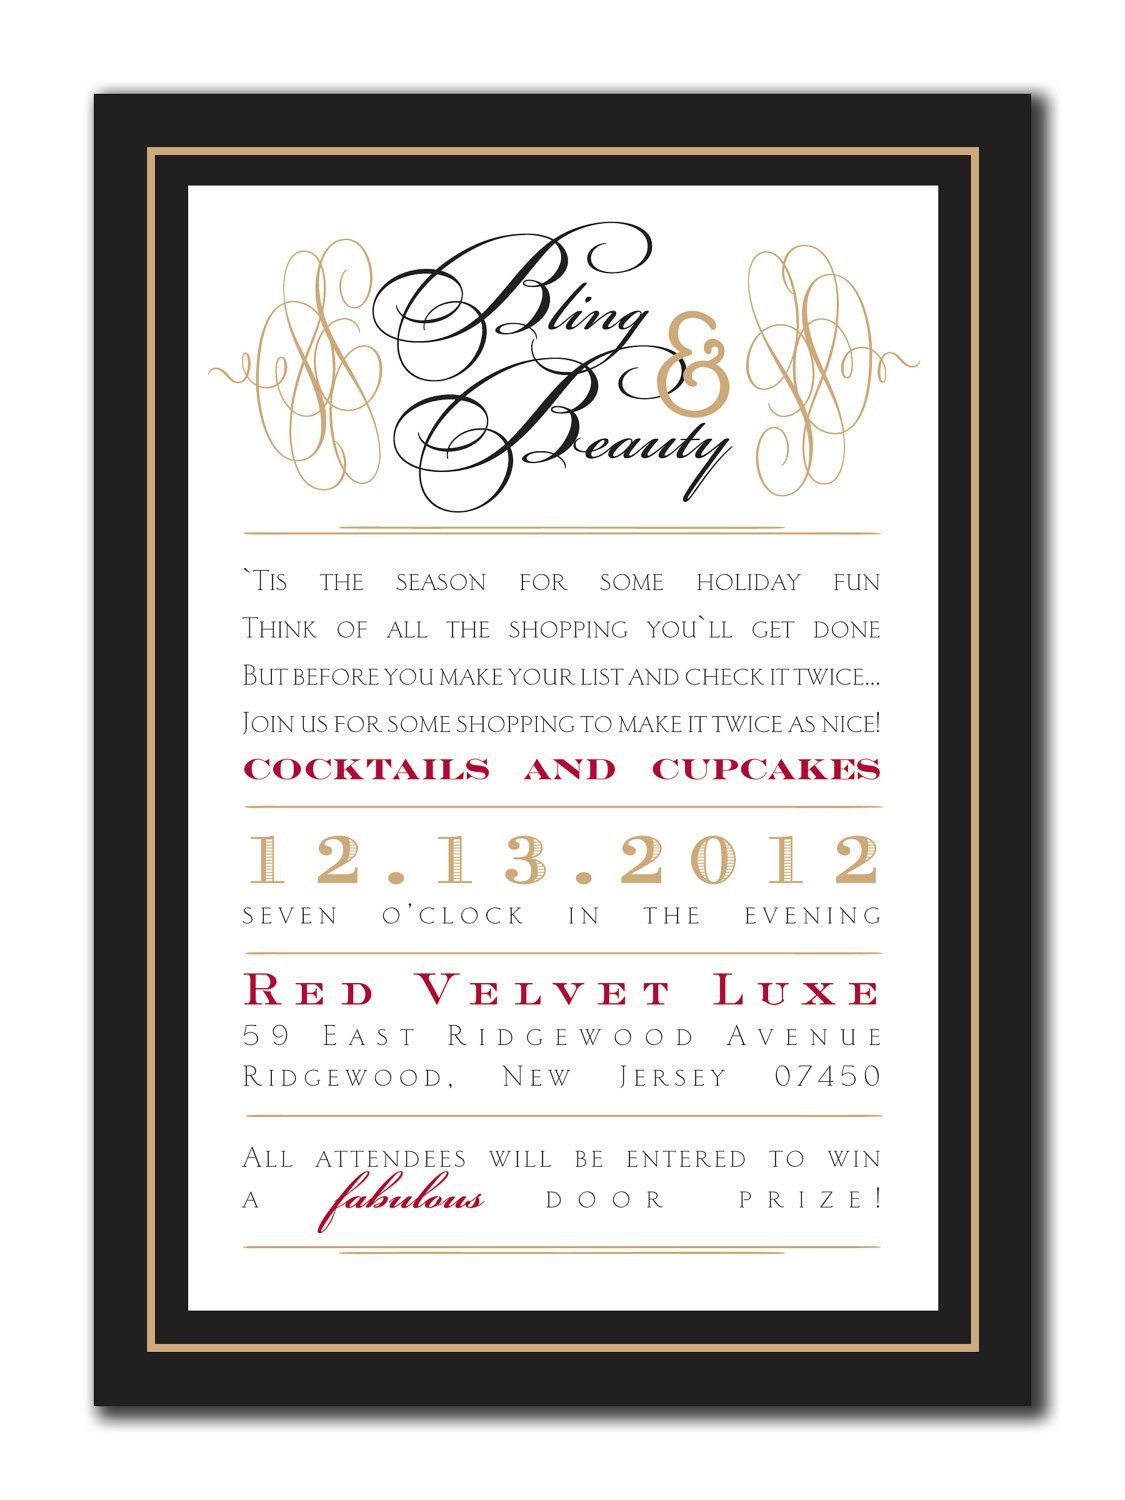 Bling and beauty open house invitation diy by lauraleidesign bling and beauty open house invitation diy by lauraleidesign stopboris Gallery